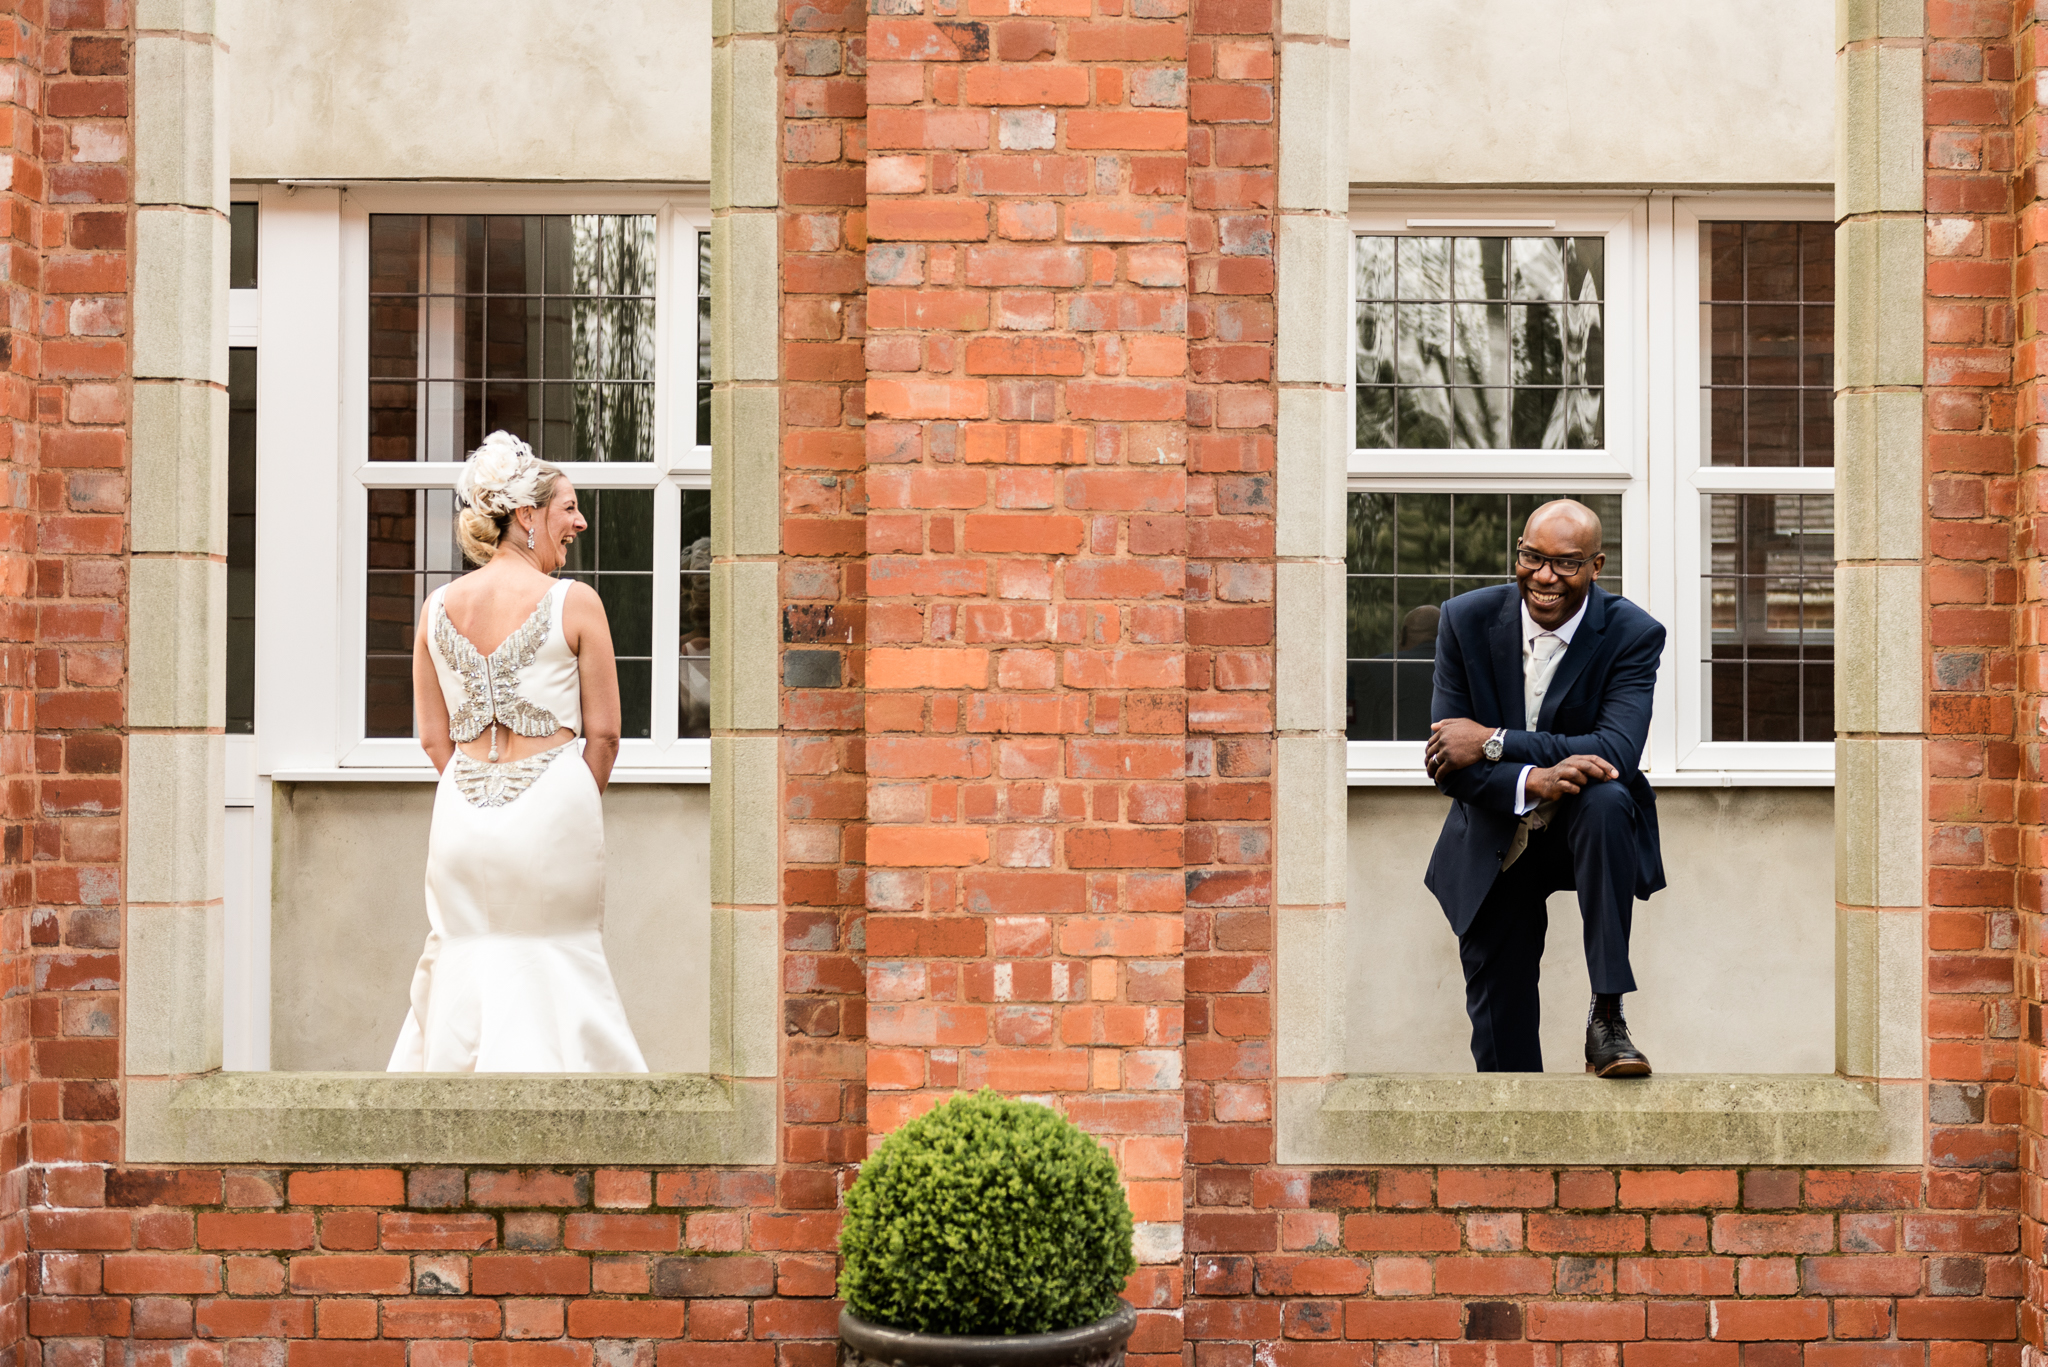 Stylish Easter Wedding at Pendrell Hall Country House Wedding Venue Staffordshire - Jenny Harper-45.jpg